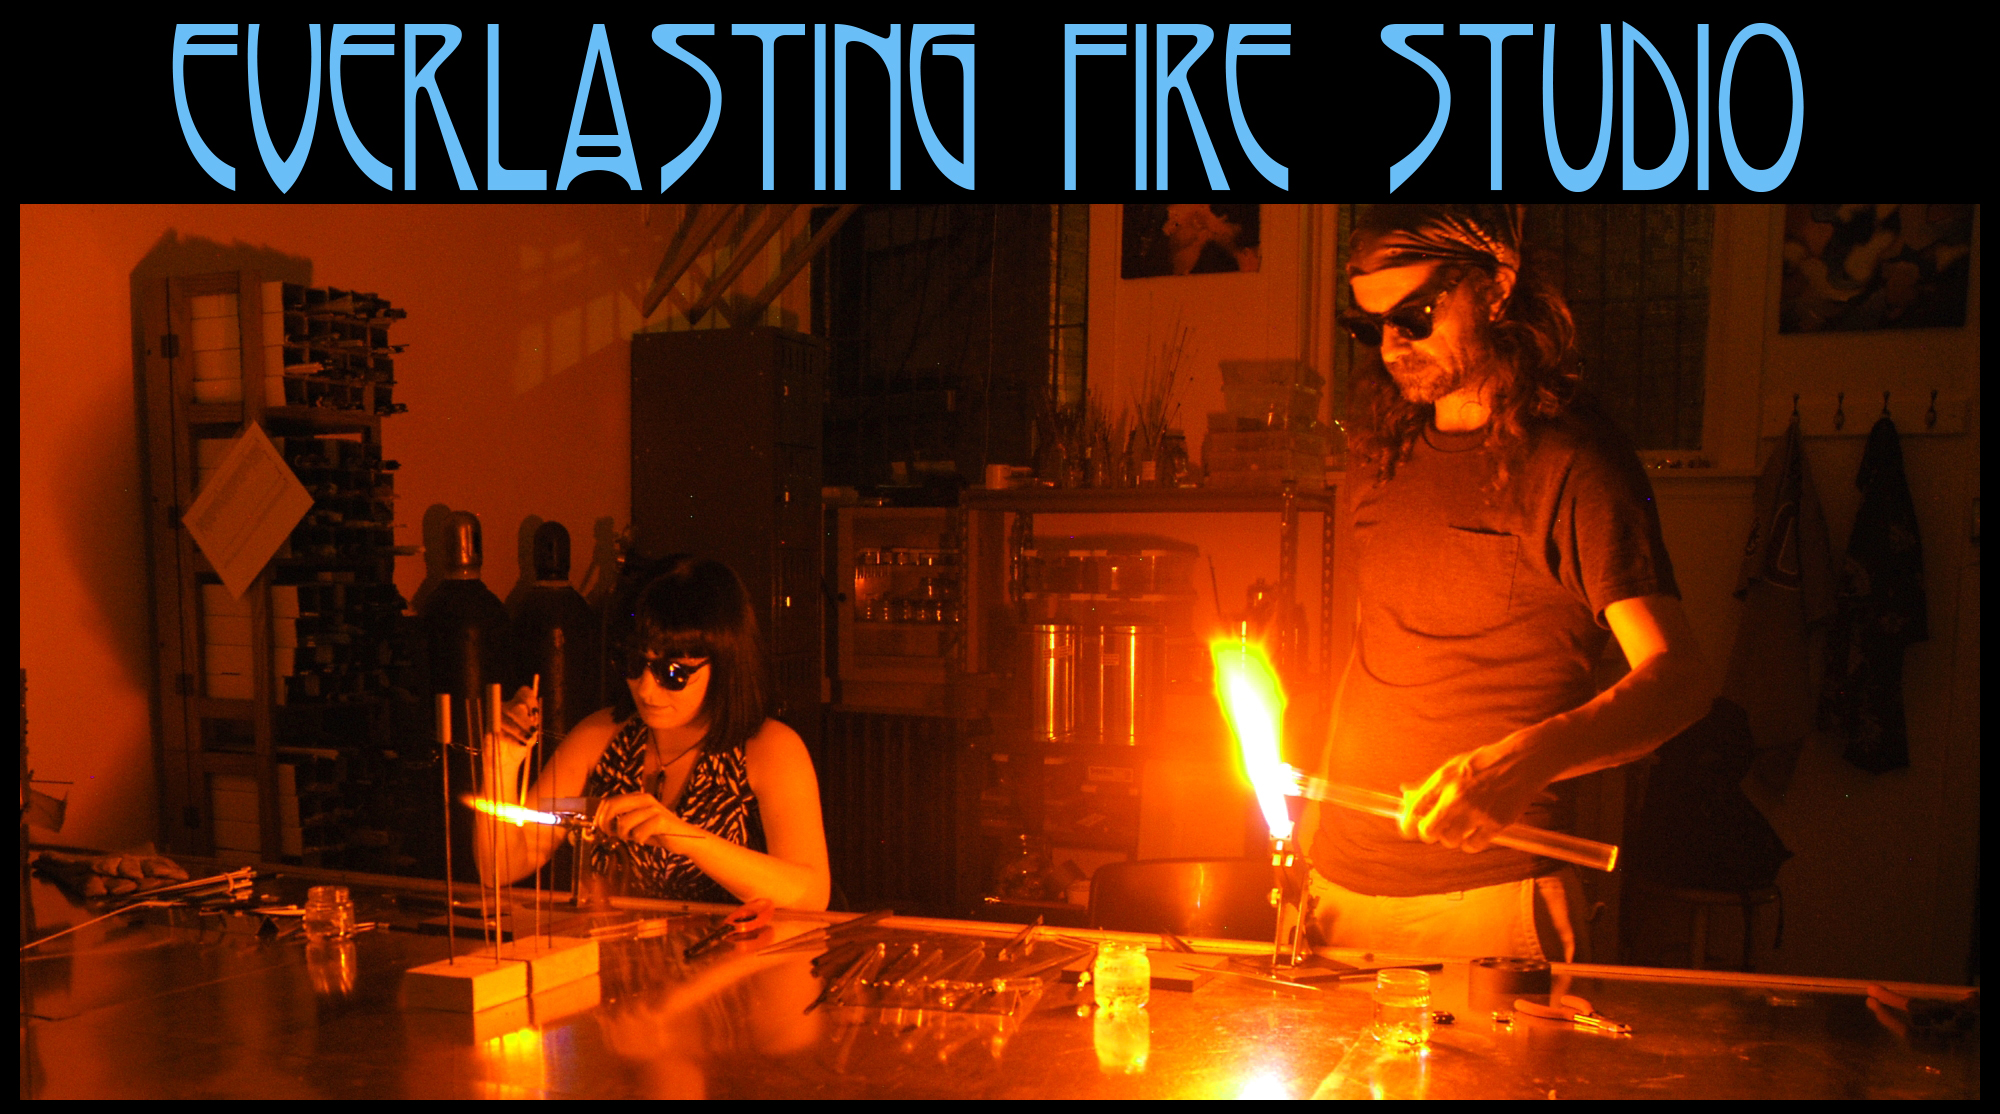 Everlasting Fire Studio